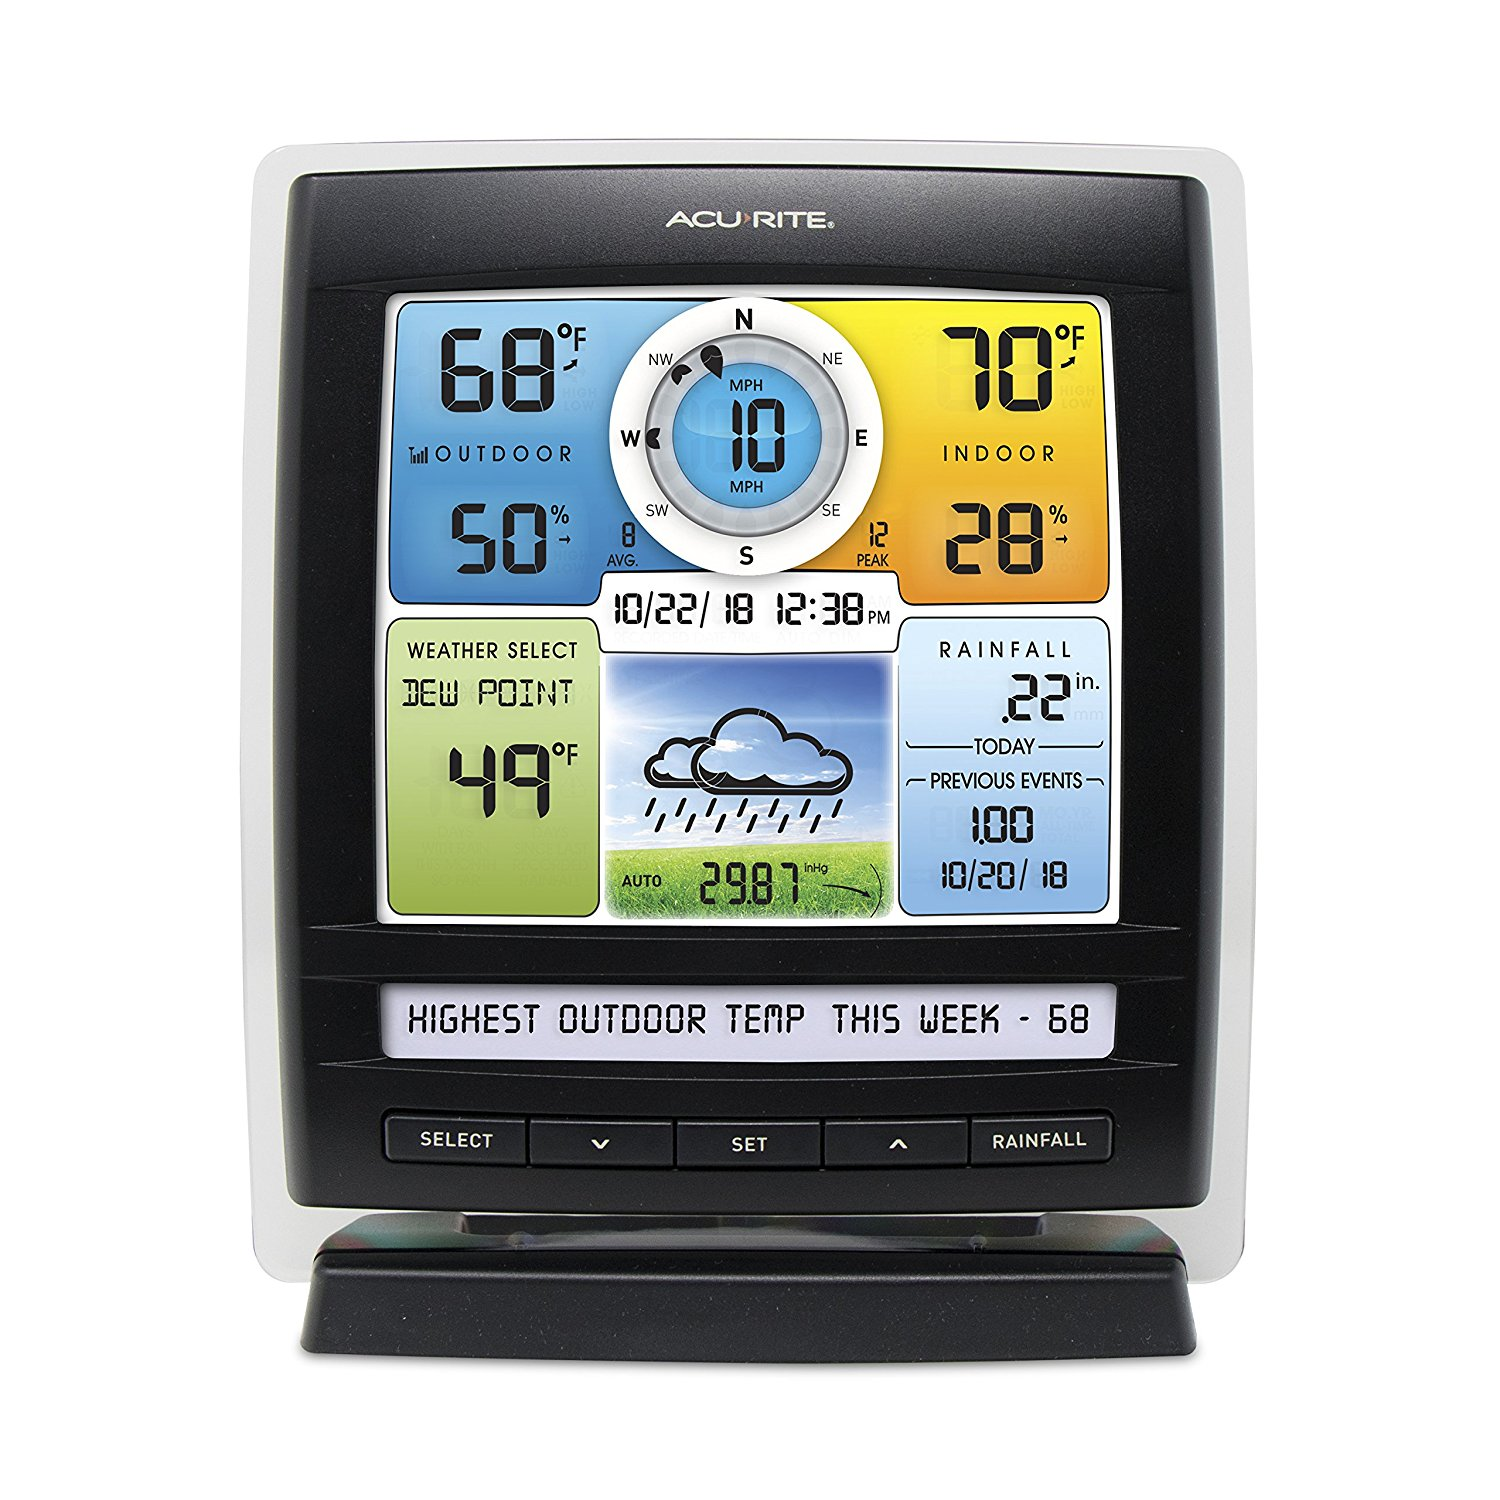 AcuRite 01512 Pro Color Weather Station Review ...